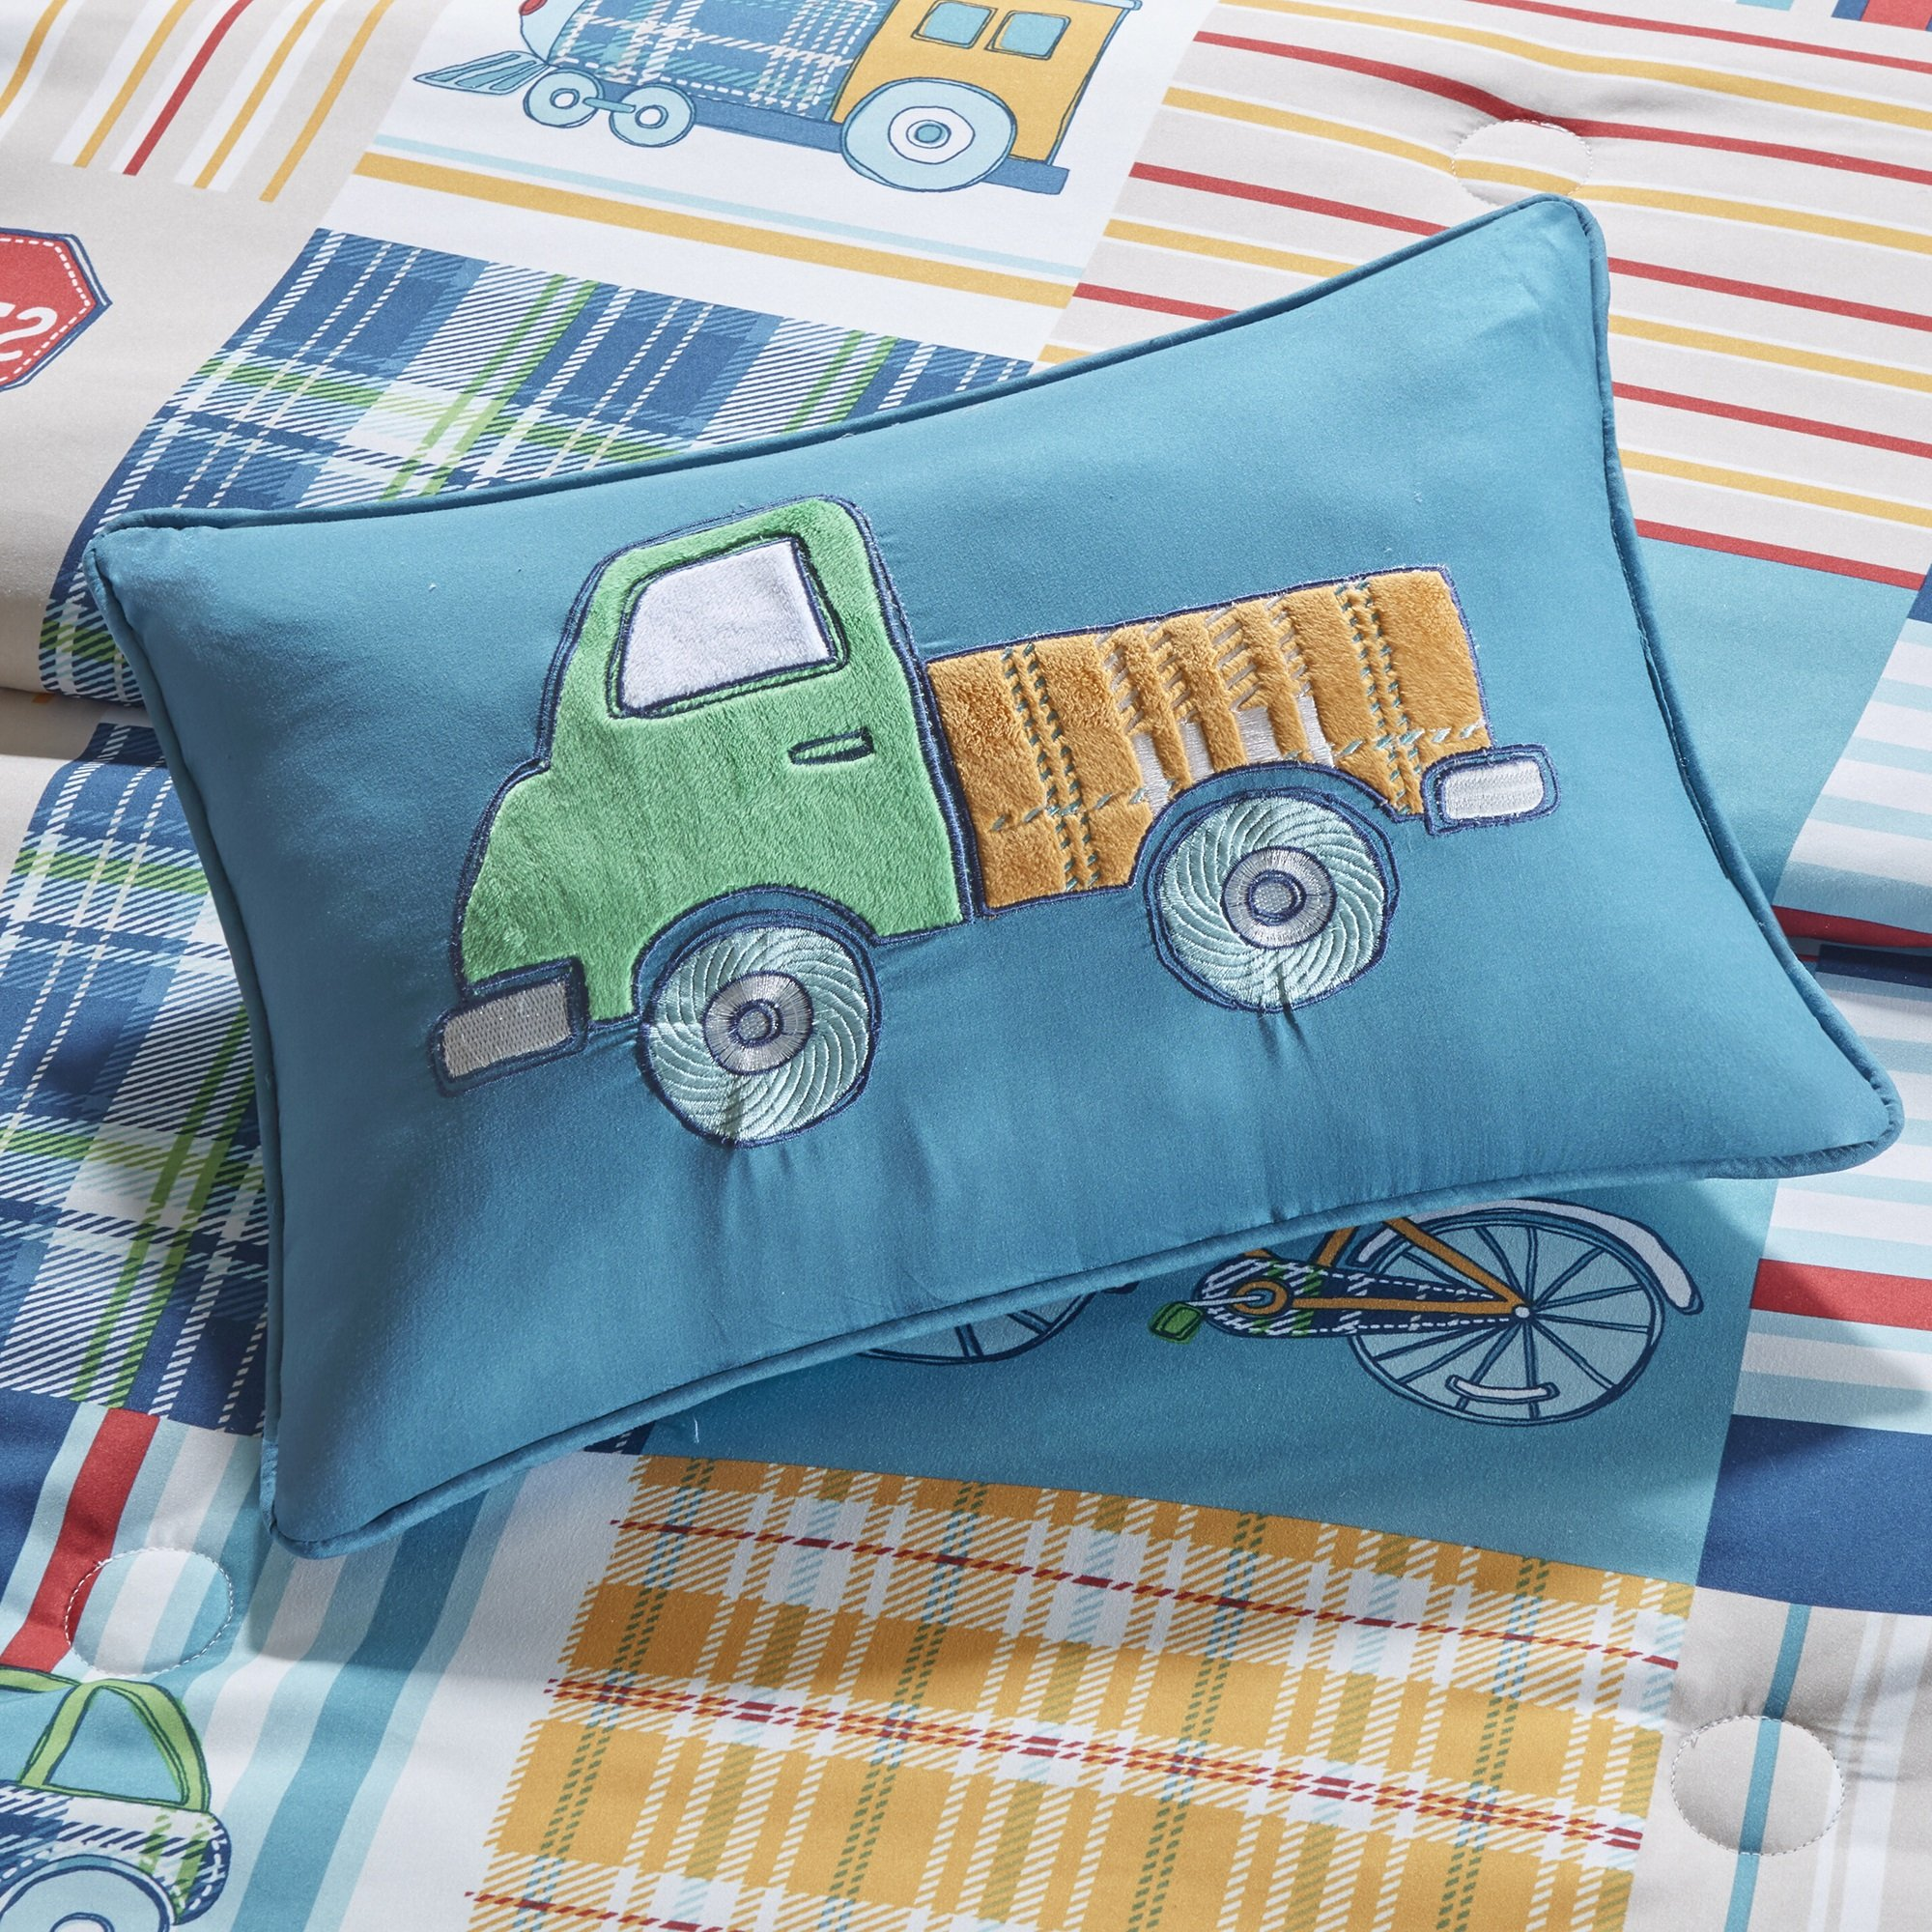 8 Piece Travel Transportation Themed Comforter Set Full Size, Featuring Patchwork Trucks Cars Train Airplanes Road Traffic Road Hazard Sign Bicycle Plaid Checkered Automobiles Kids Bedding, Blue